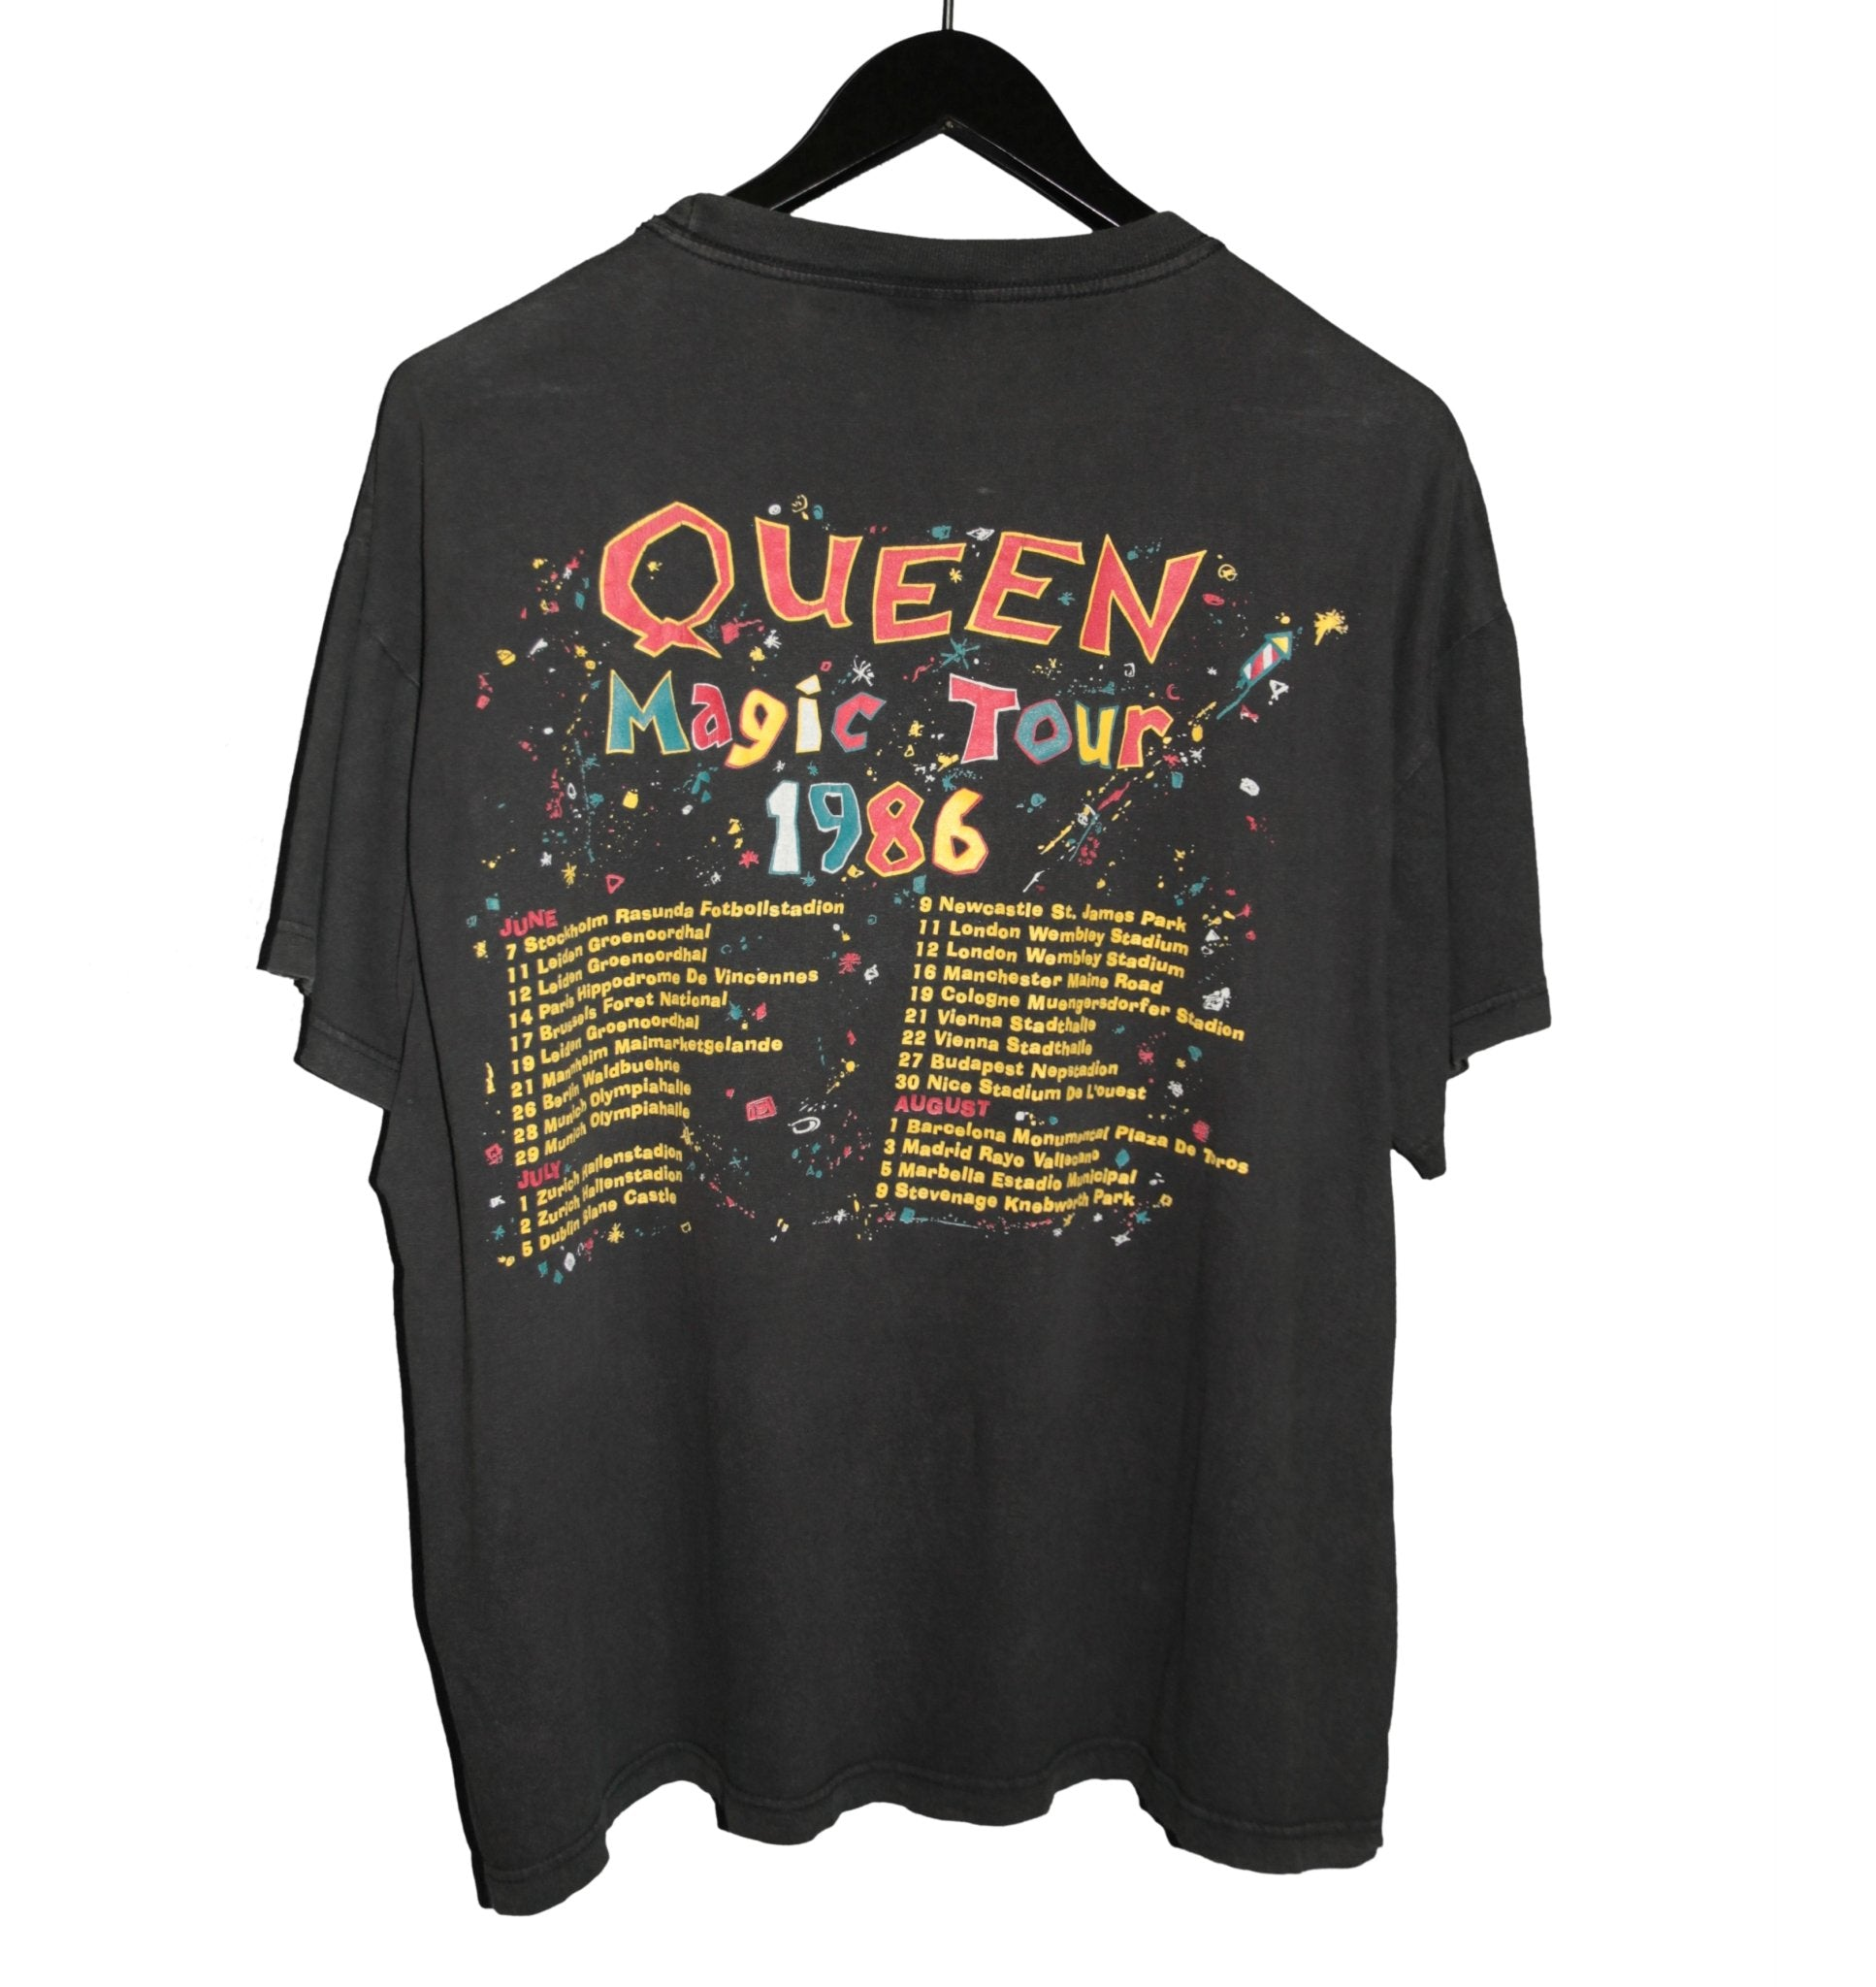 Queen 1986 A Kind Of Magic Tour Shirt - Faded AU